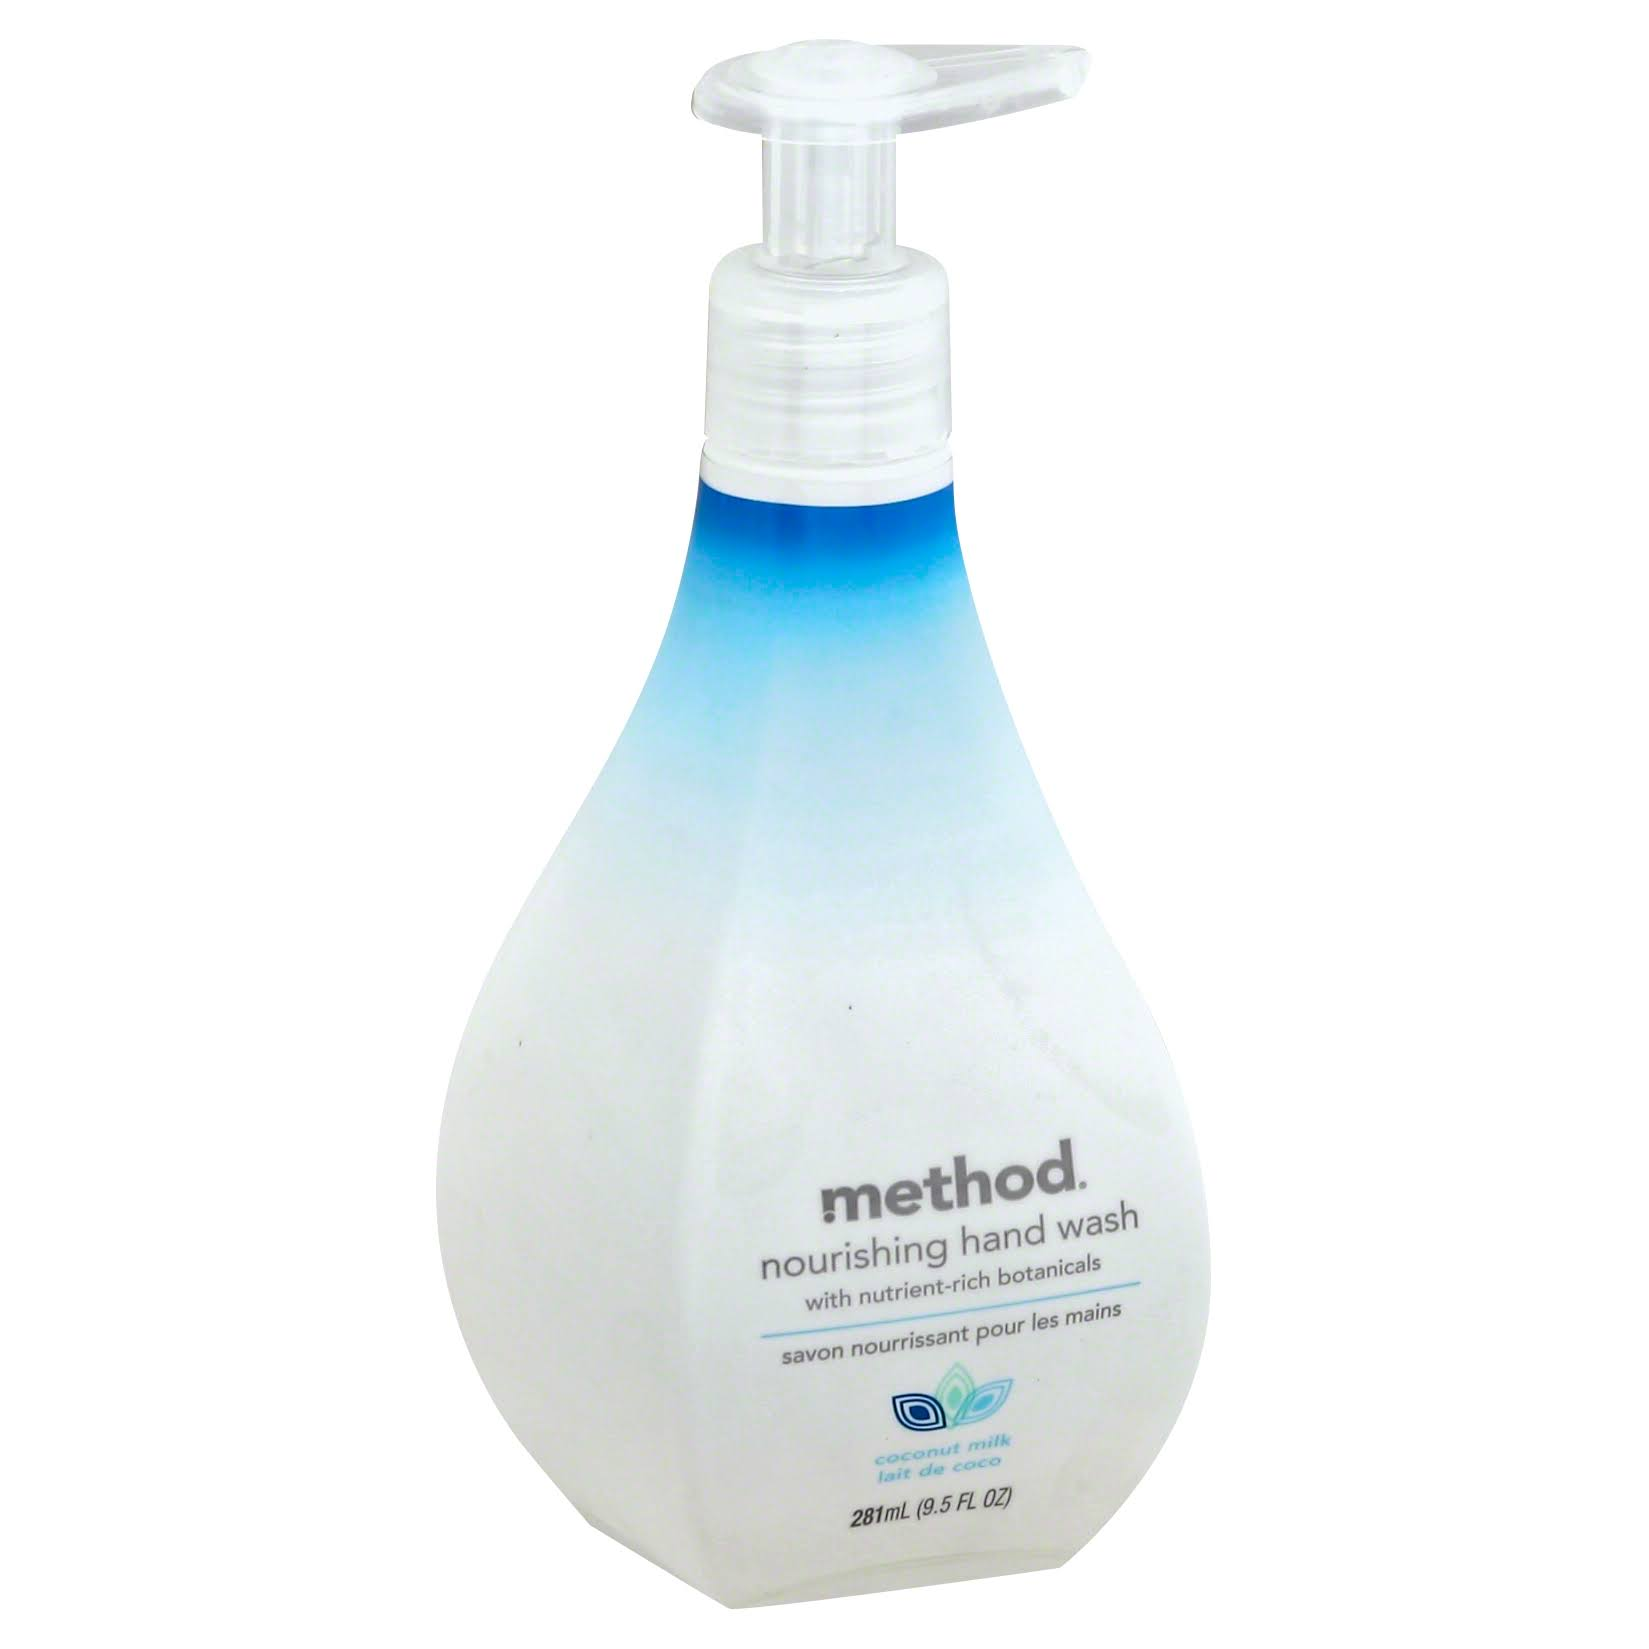 Method Nourishing Hand Wash - Coconut Milk